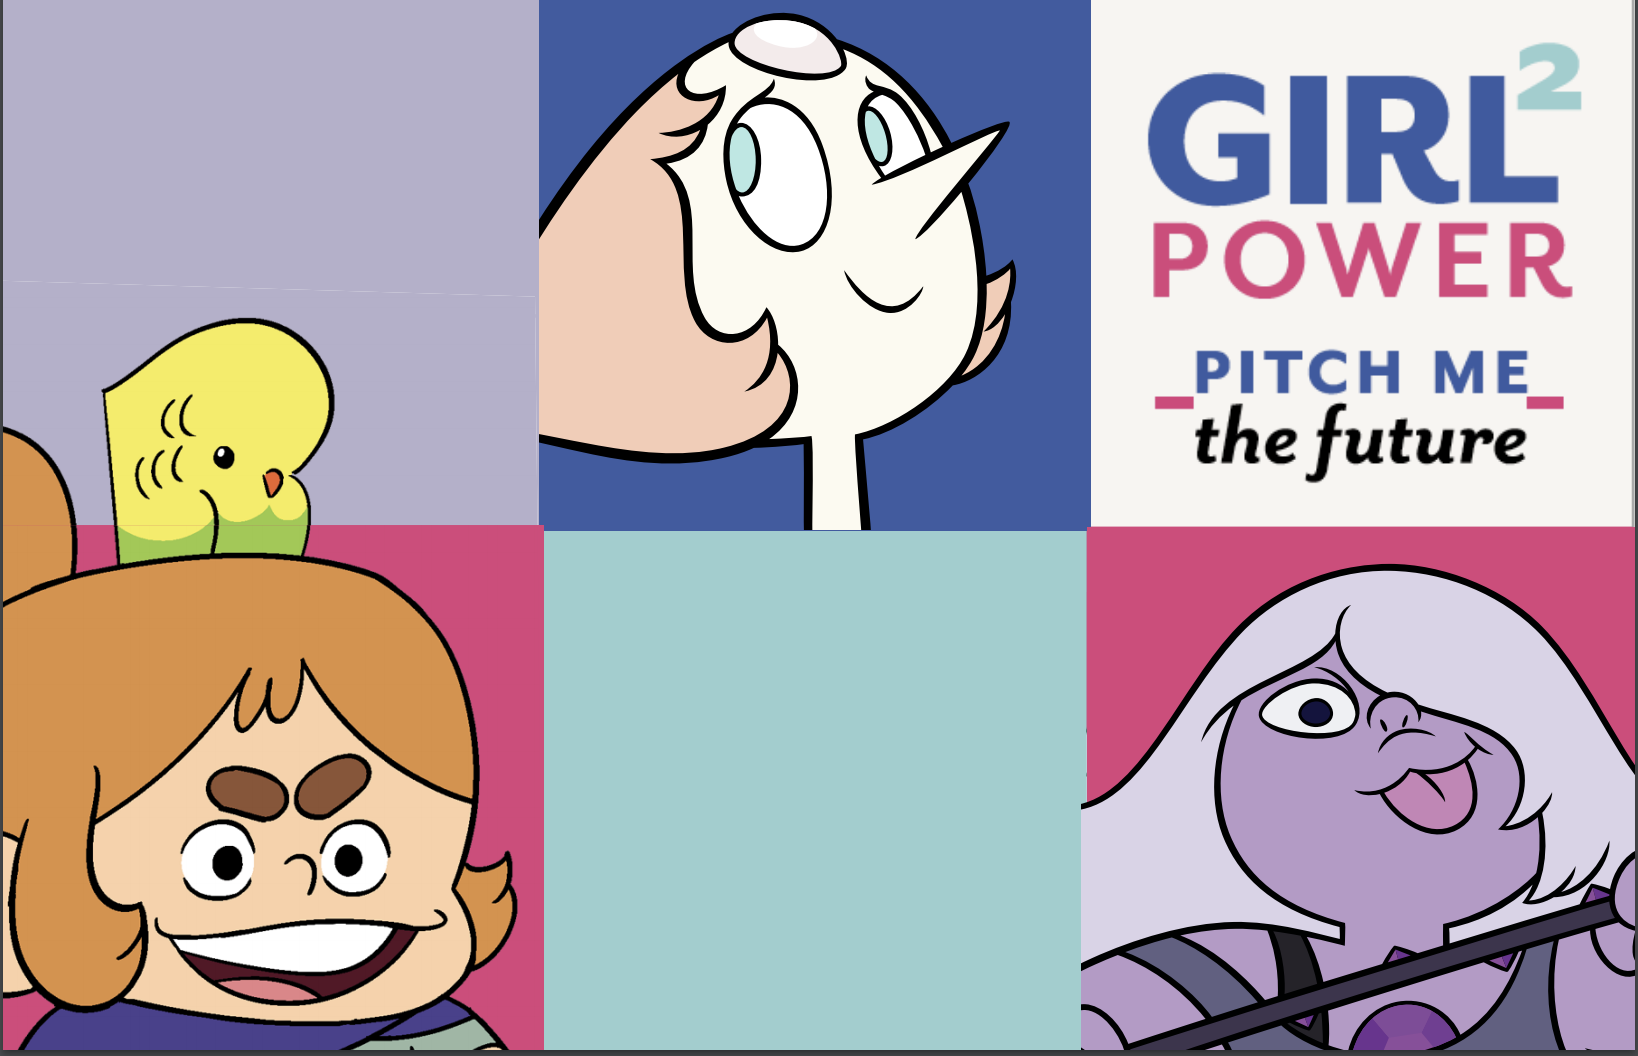 GirlPower2PitchMeTheFuture, CartoonNetwork, Pixelatl, GirlPower 2, Pitch Me The Future, Girl Power Pitch Me The Future, Girl Power